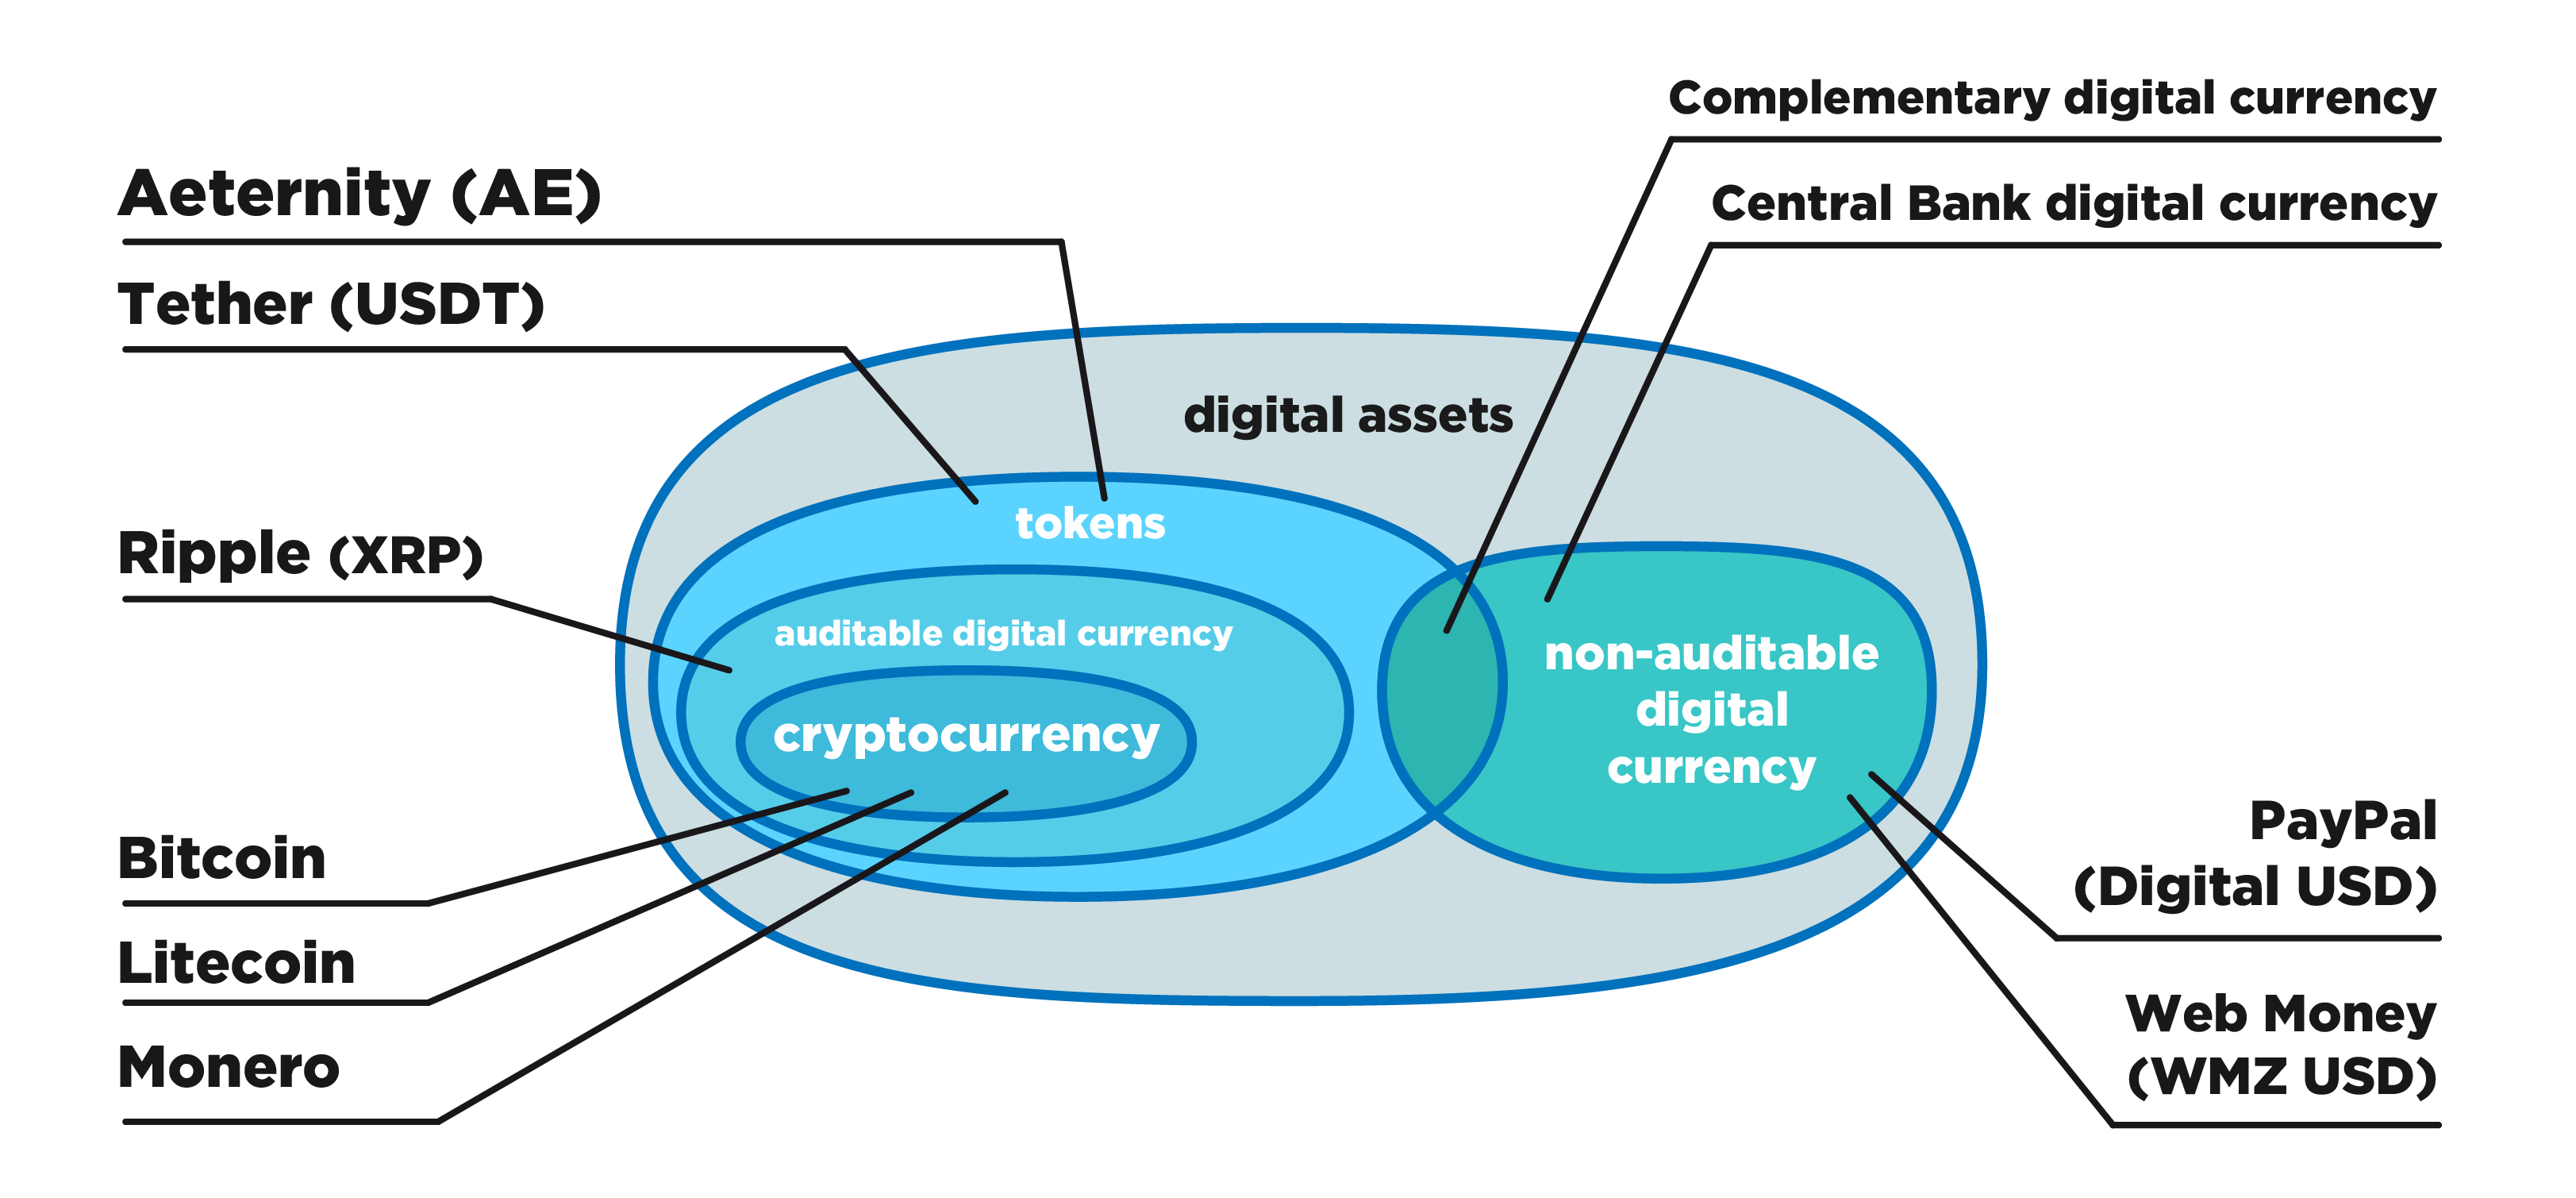 How to distinguish the crypto currency from the non-crypto currency